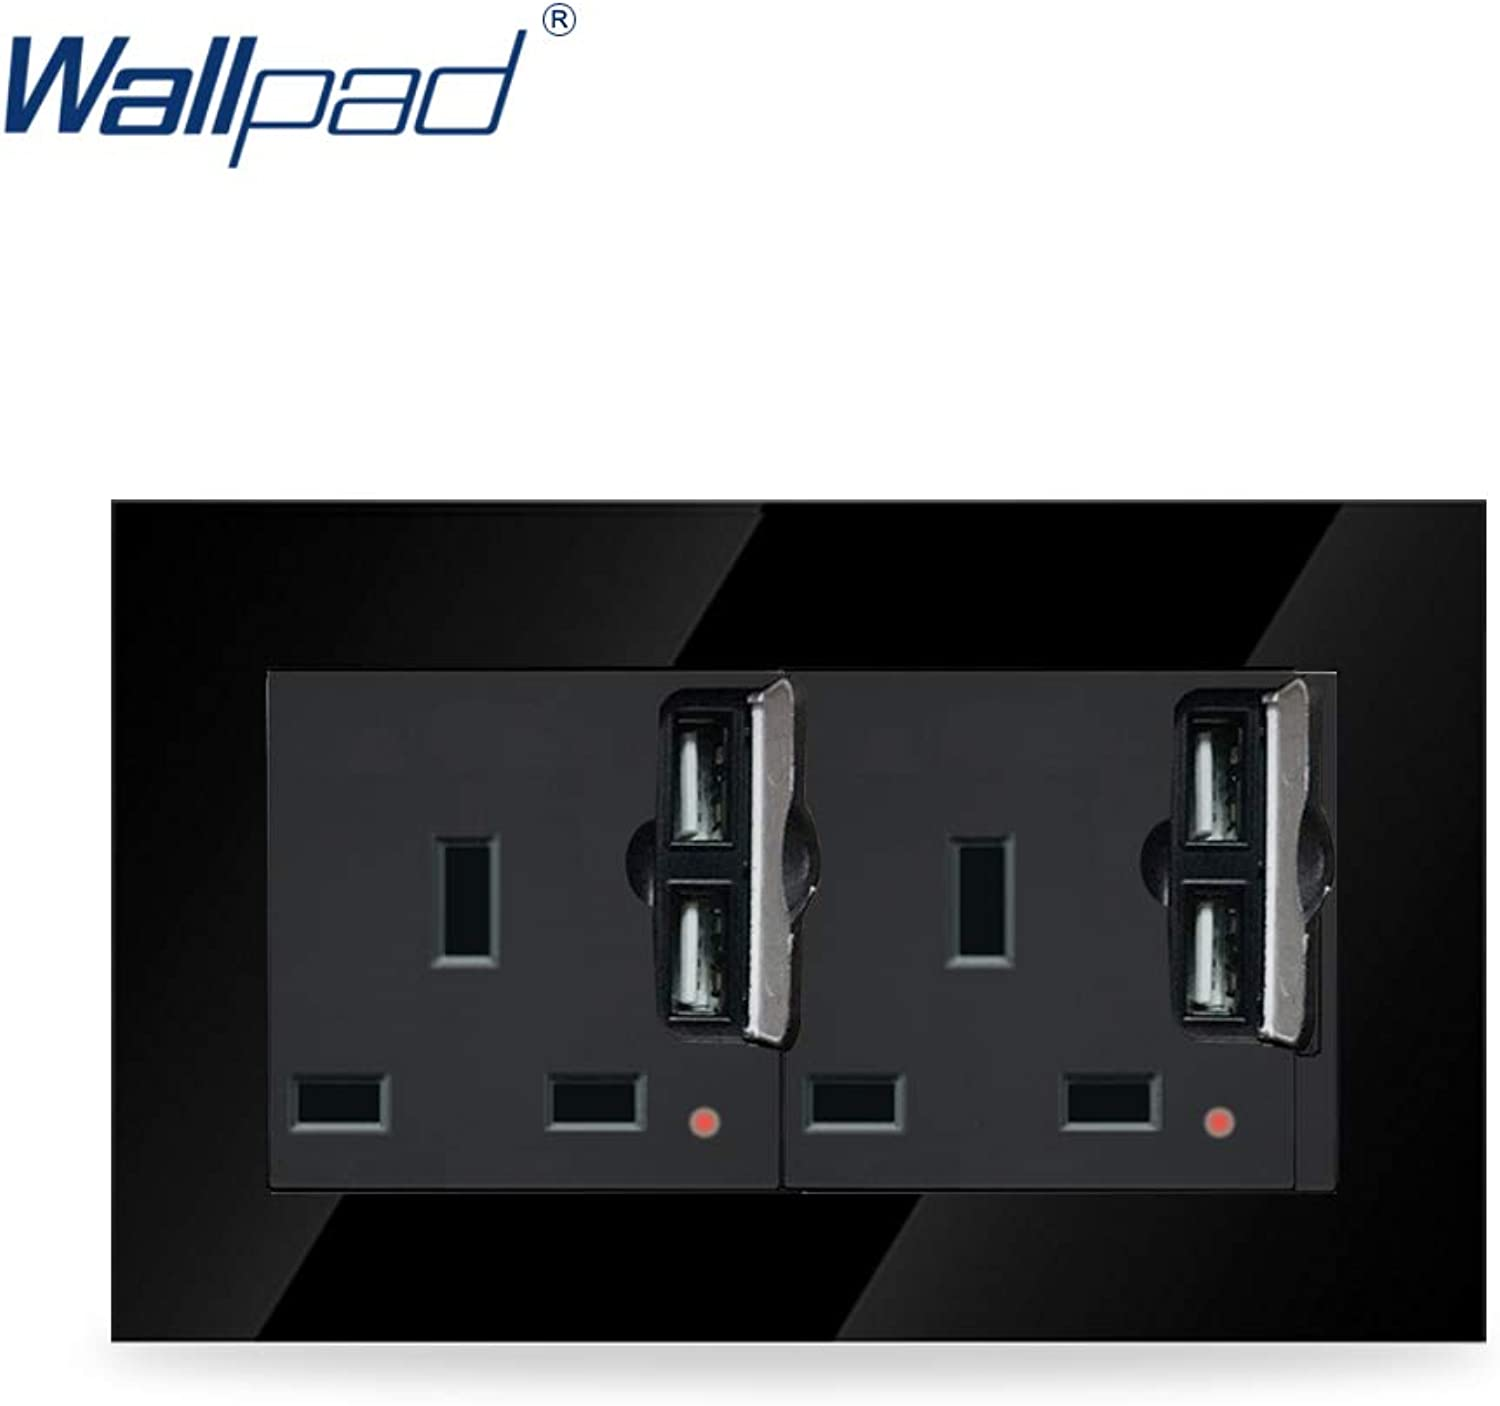 Wallpad Luxury Black Crystal Glass Frame 146  86mm Double 13A UK Socket with Four USB Wall Chargers